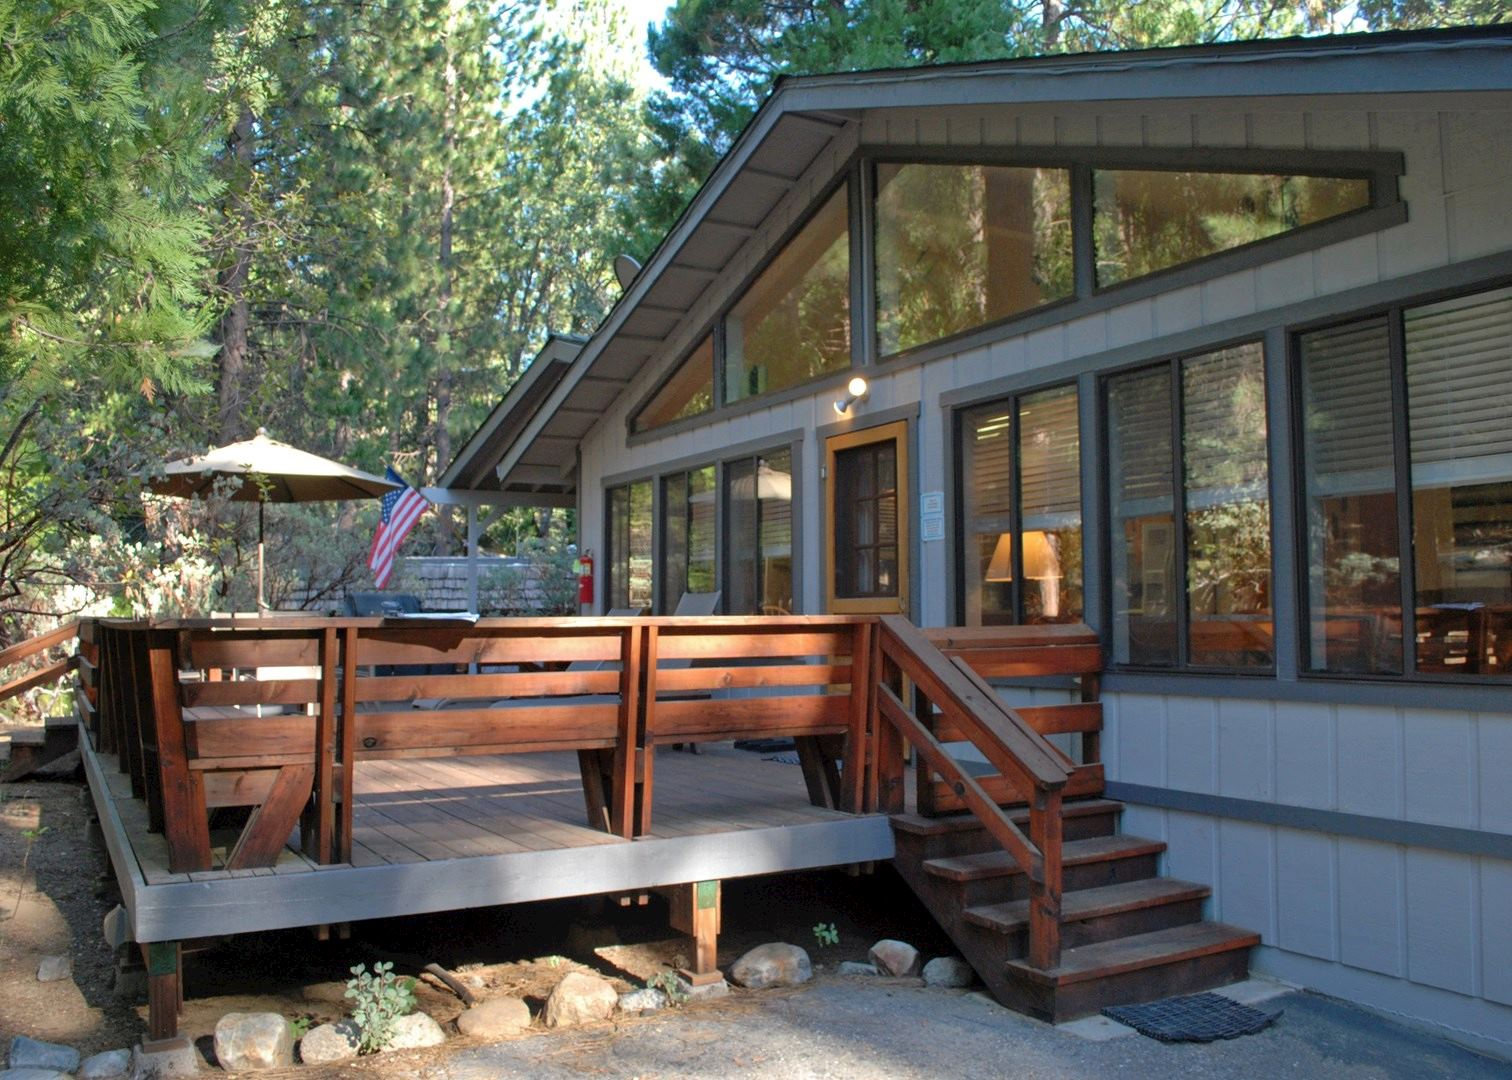 attractions from vacation yosemite our major located park front cabins peregrine rental national valley minutes the luxury gates is a inside lodge near